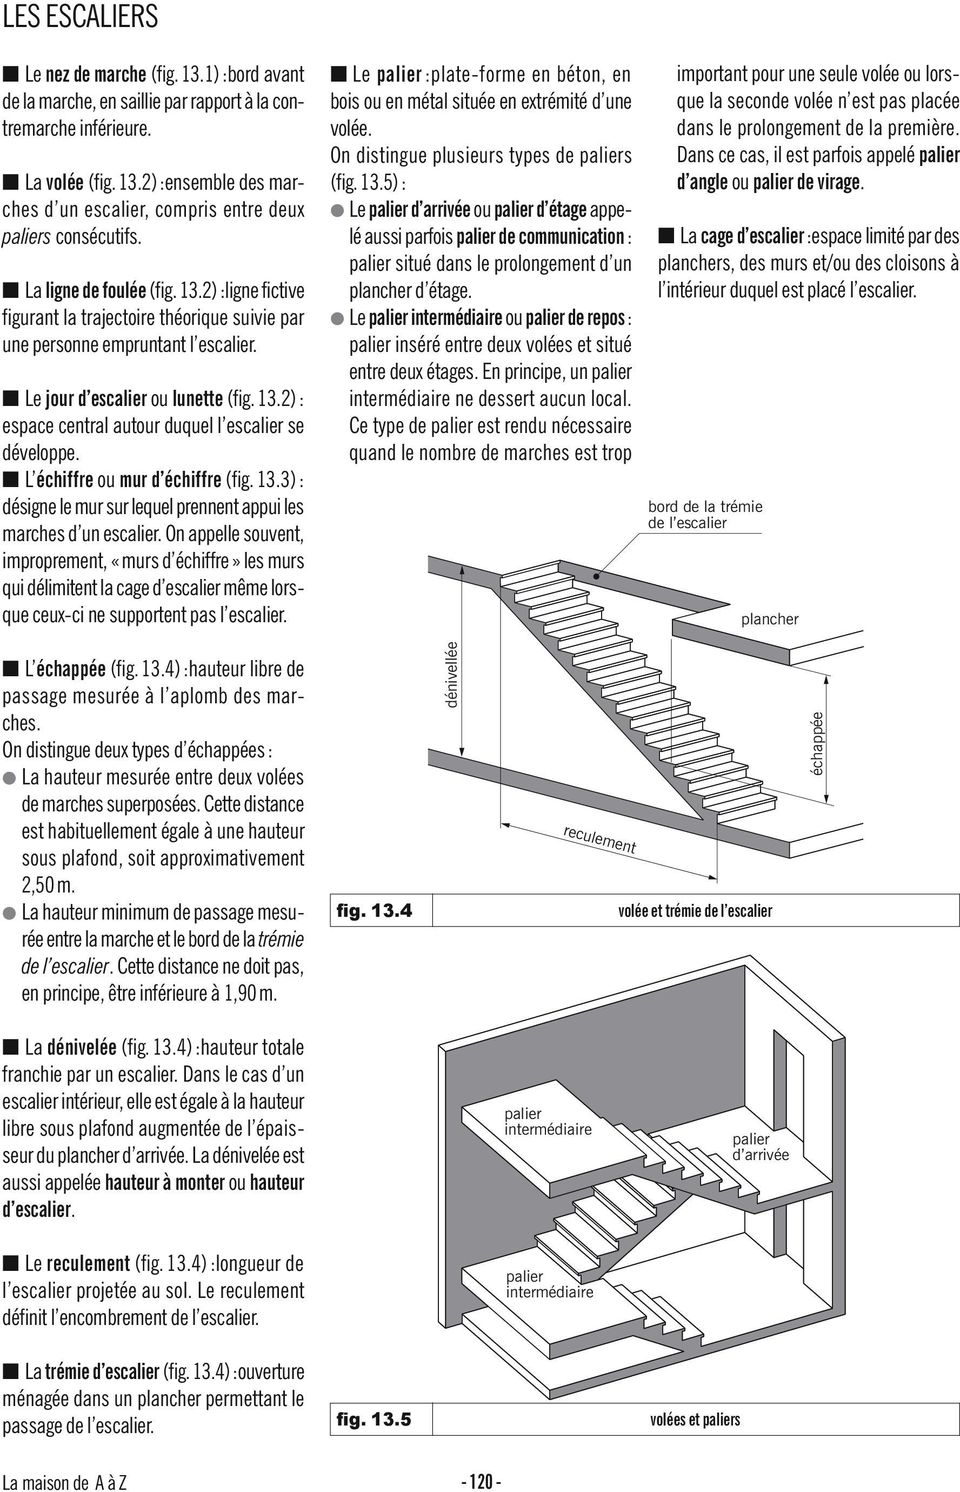 les escaliers les mots de l escalier pdf. Black Bedroom Furniture Sets. Home Design Ideas